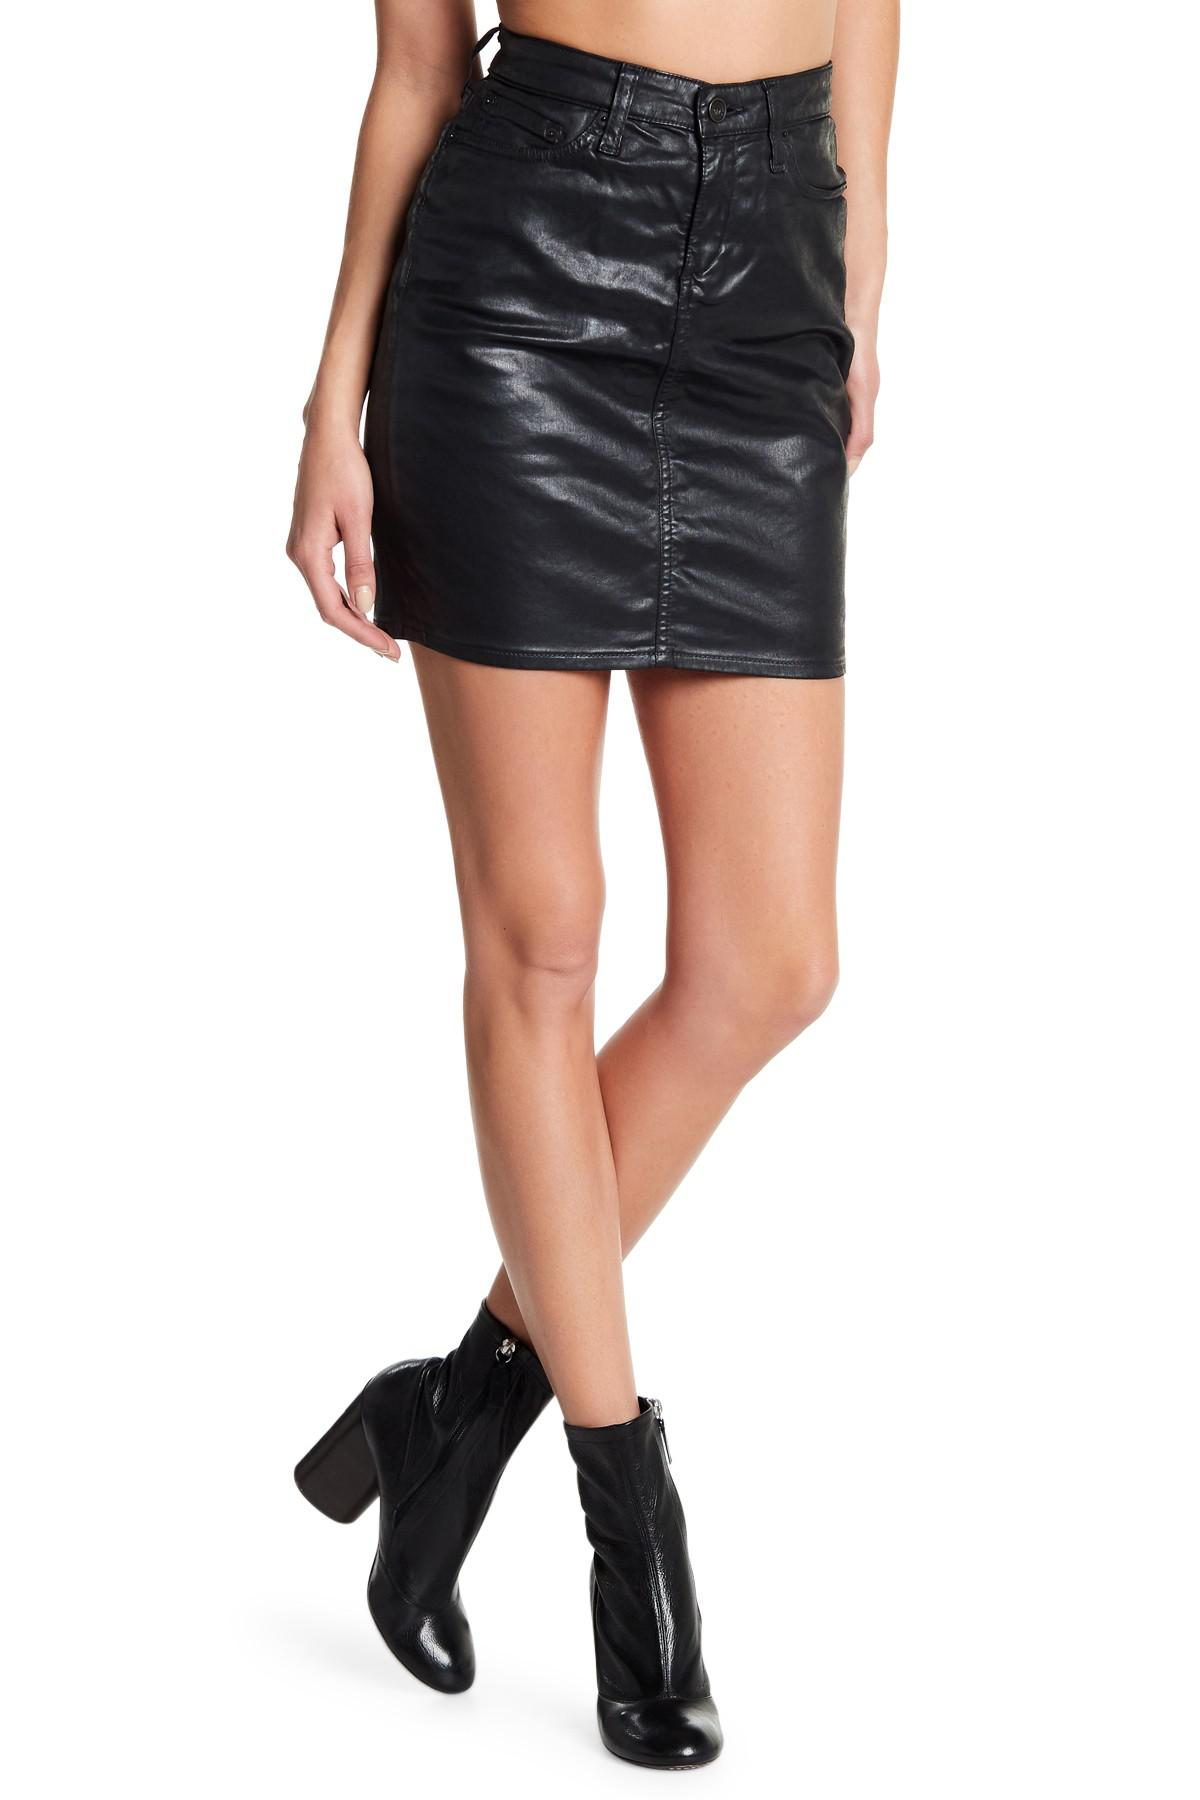 Celebrity Pink Super Skinny Stretch Mid Rise Black Waxed ...